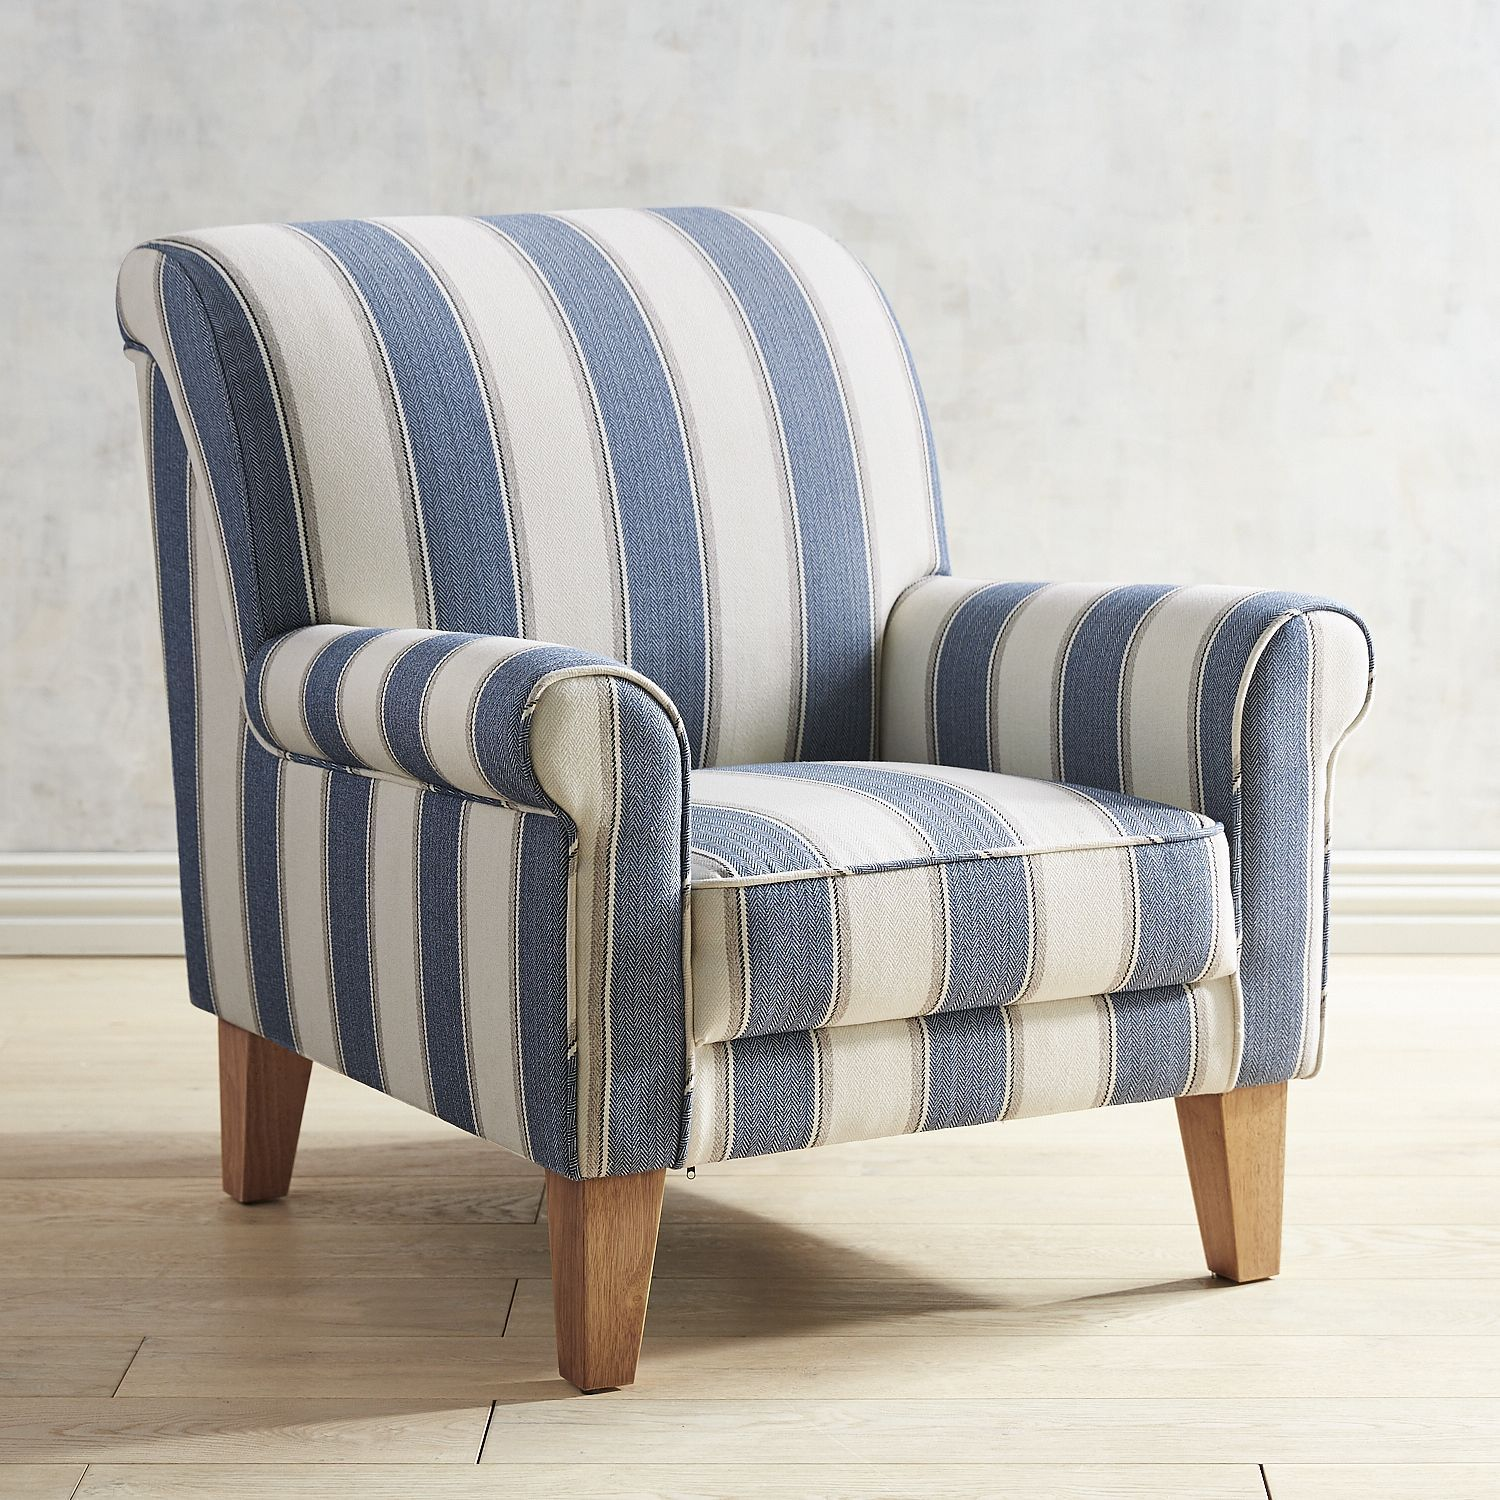 Merveilleux Lyndee Blue U0026 White Striped Rolled Armchair